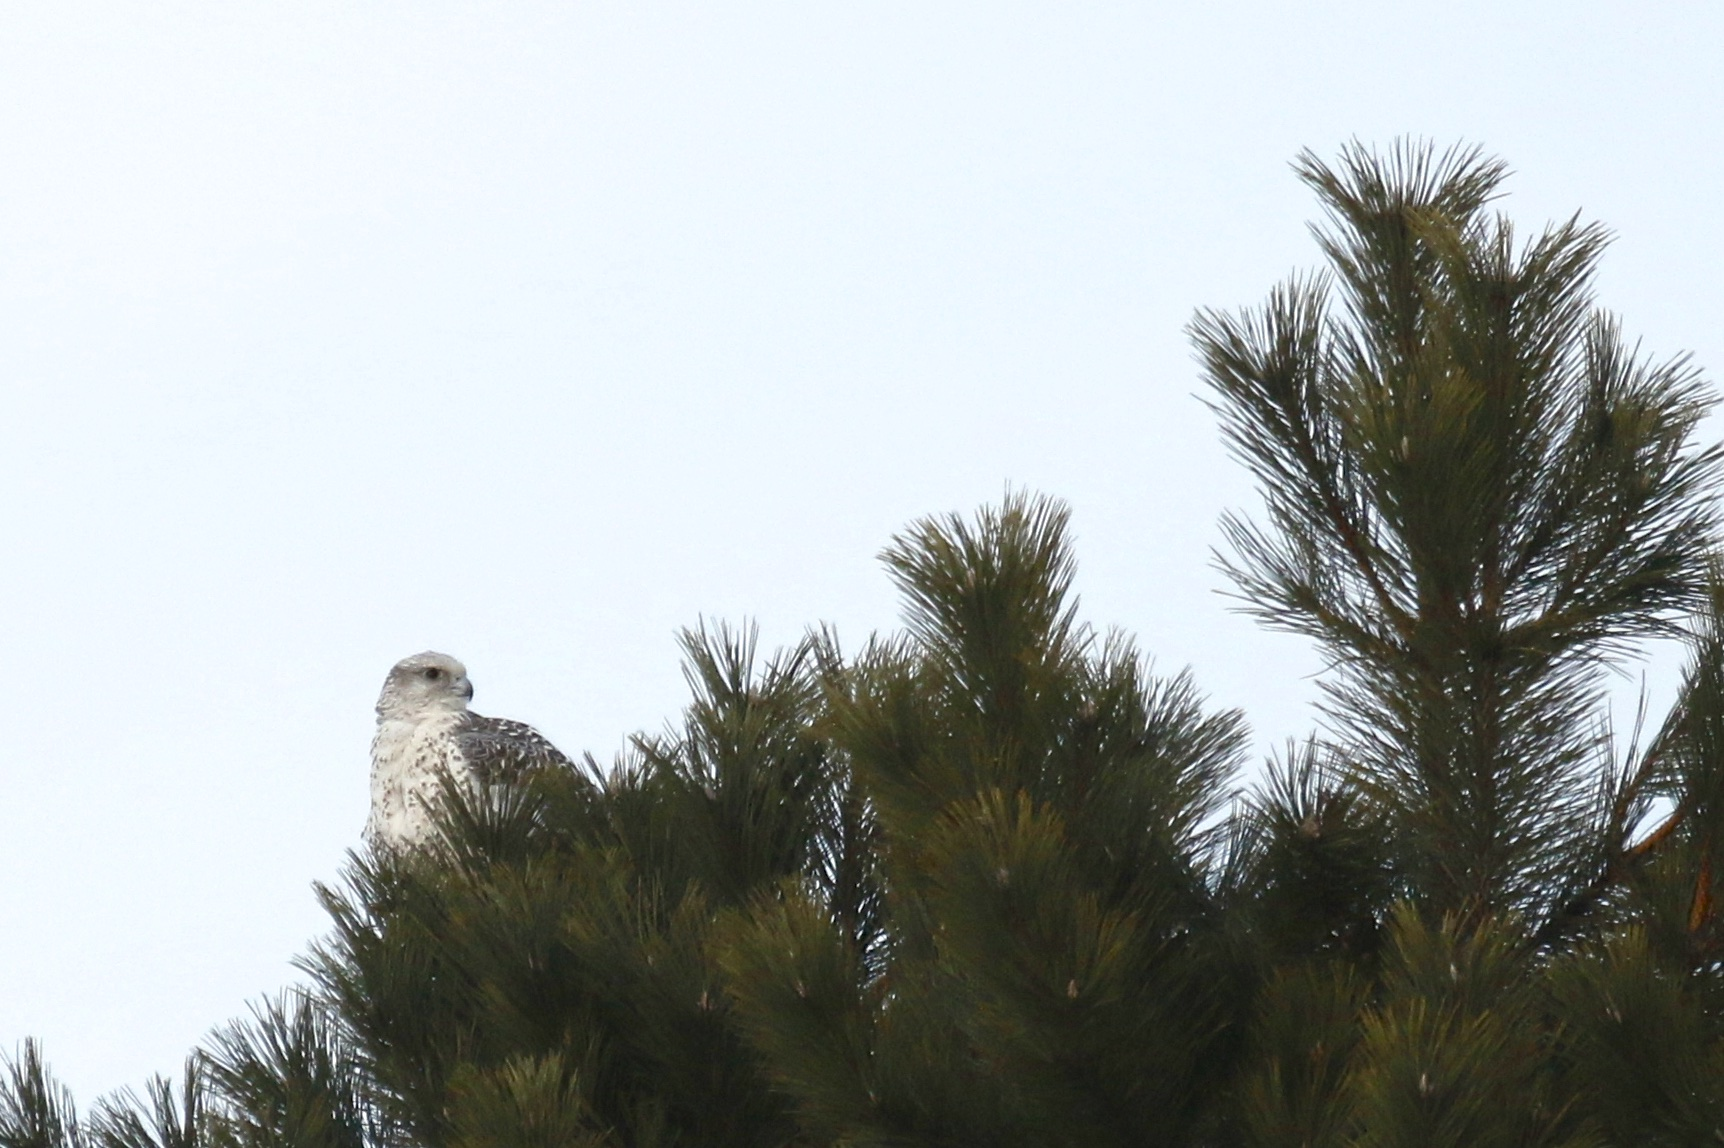 ~The incredible Gyrfalcon perched, Wallkill NY, 2/18/15.~